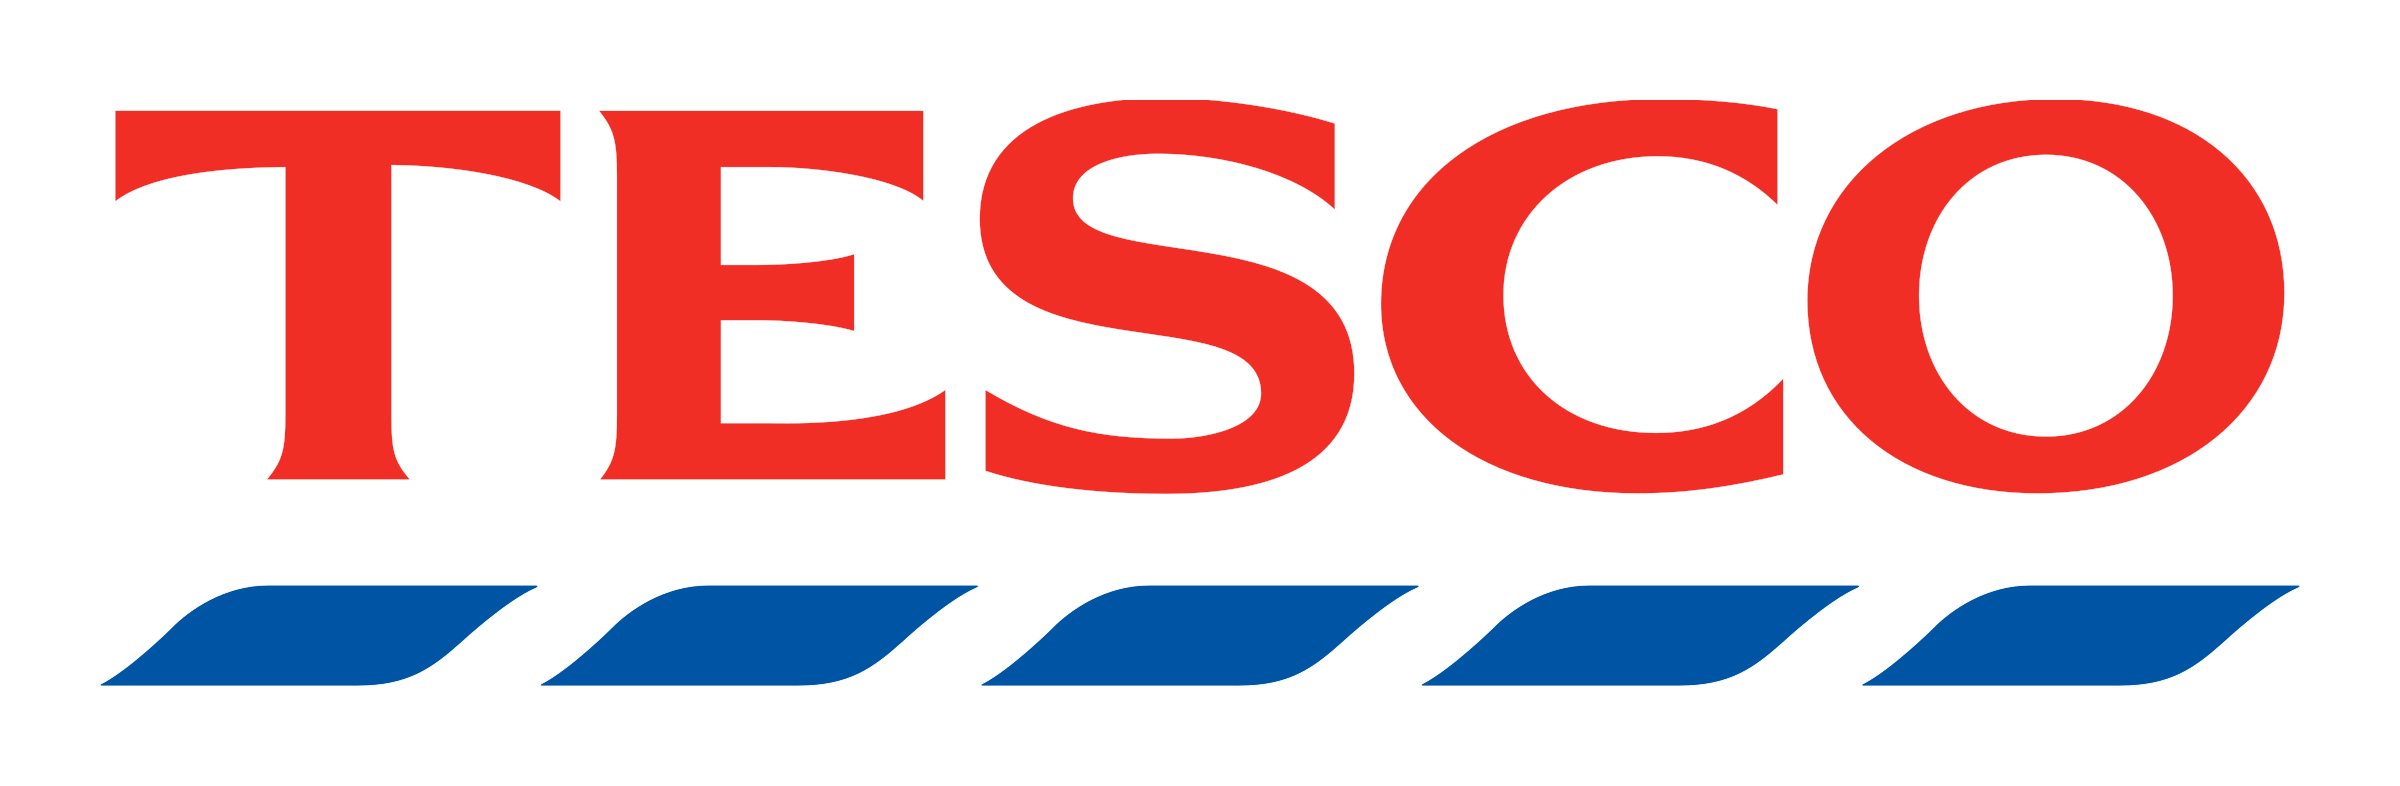 Tesco-logo-png-transparent